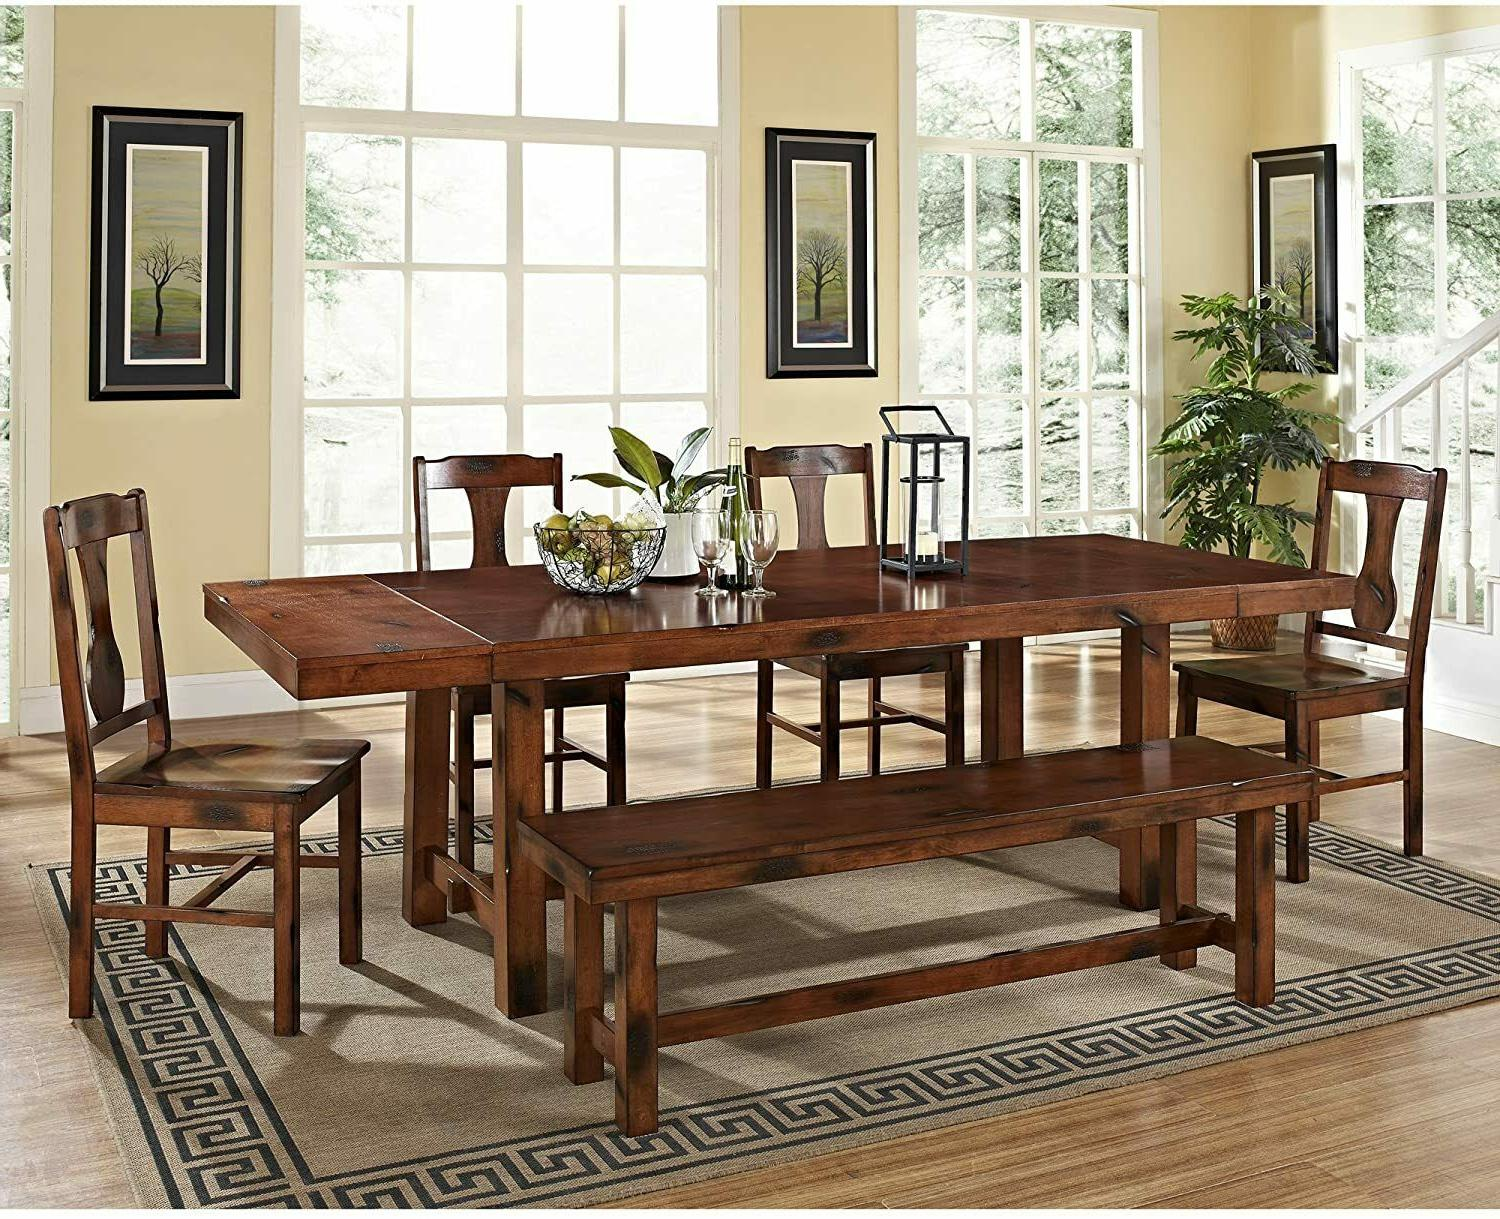 Extra Rustic Wood Expandable Double Tables